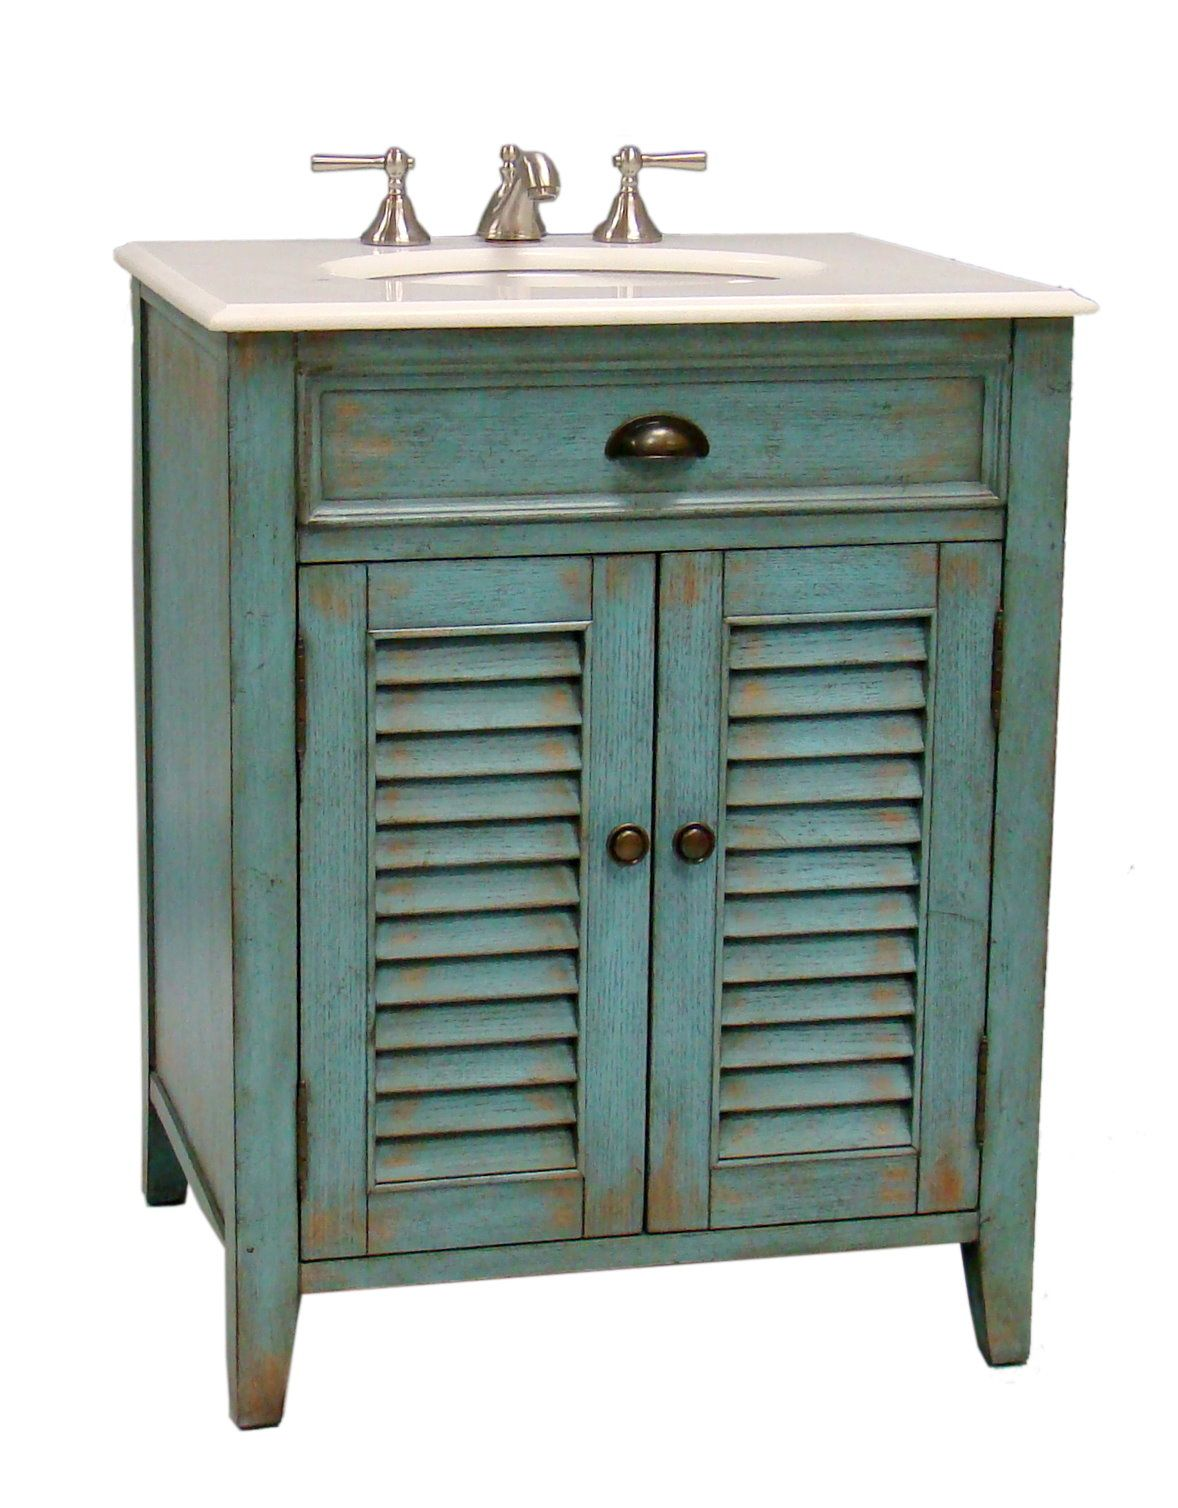 Shutter-style door with antique blue finish Size: 26x21.5x34